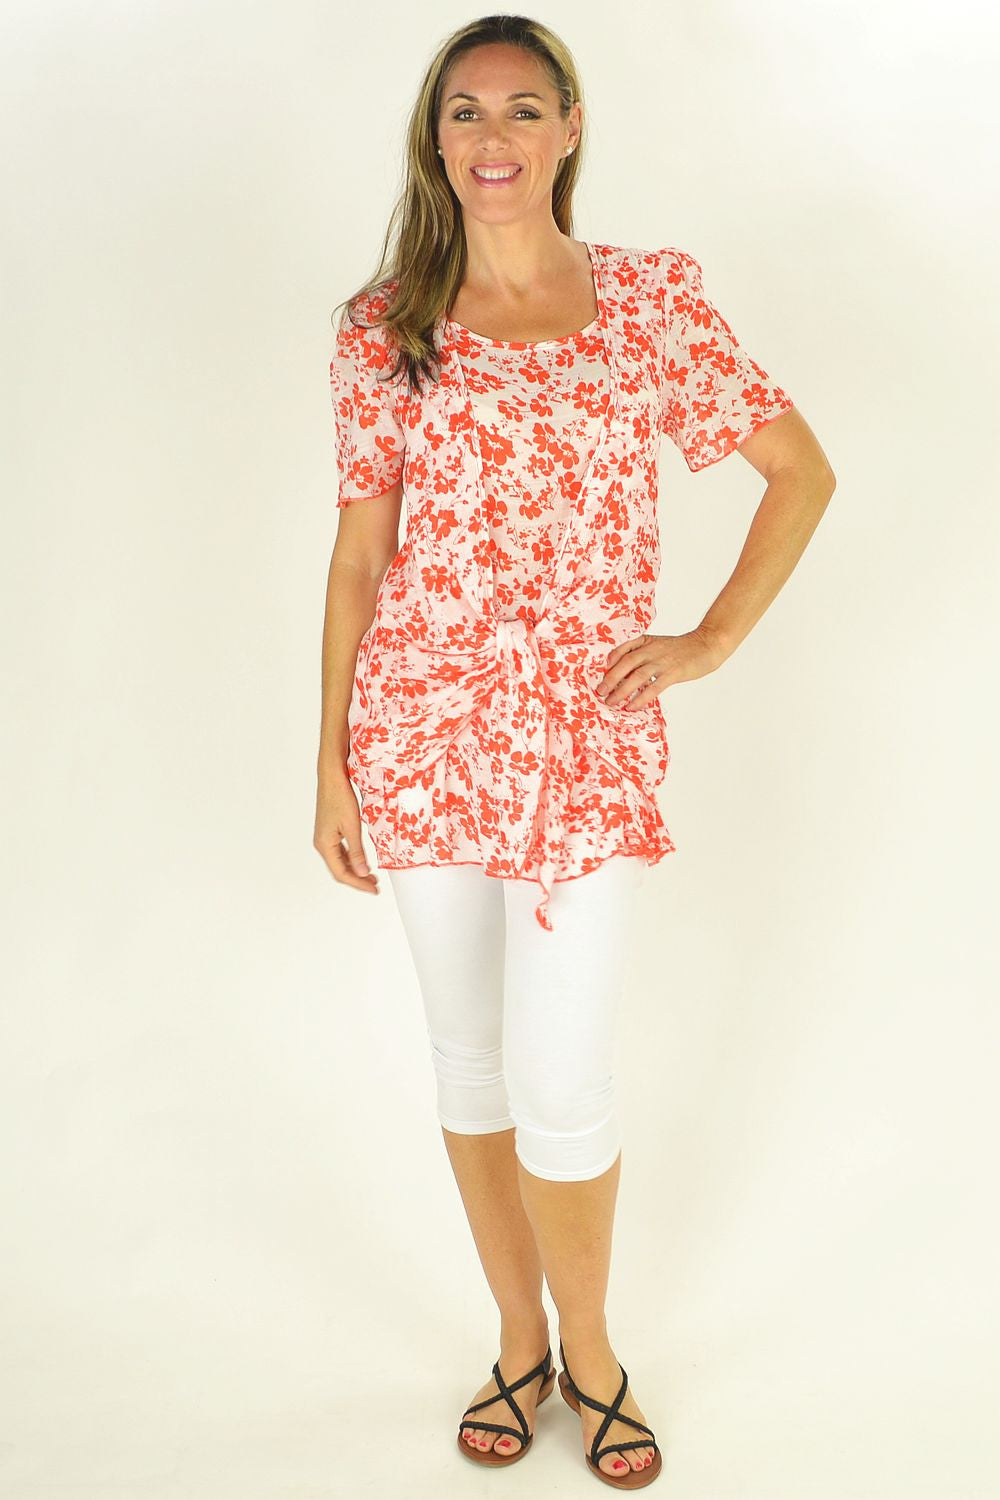 Orange Cherry Blossom Tunic - at I Love Tunics @ www.ilovetunics.com = Number One! Tunics Destination